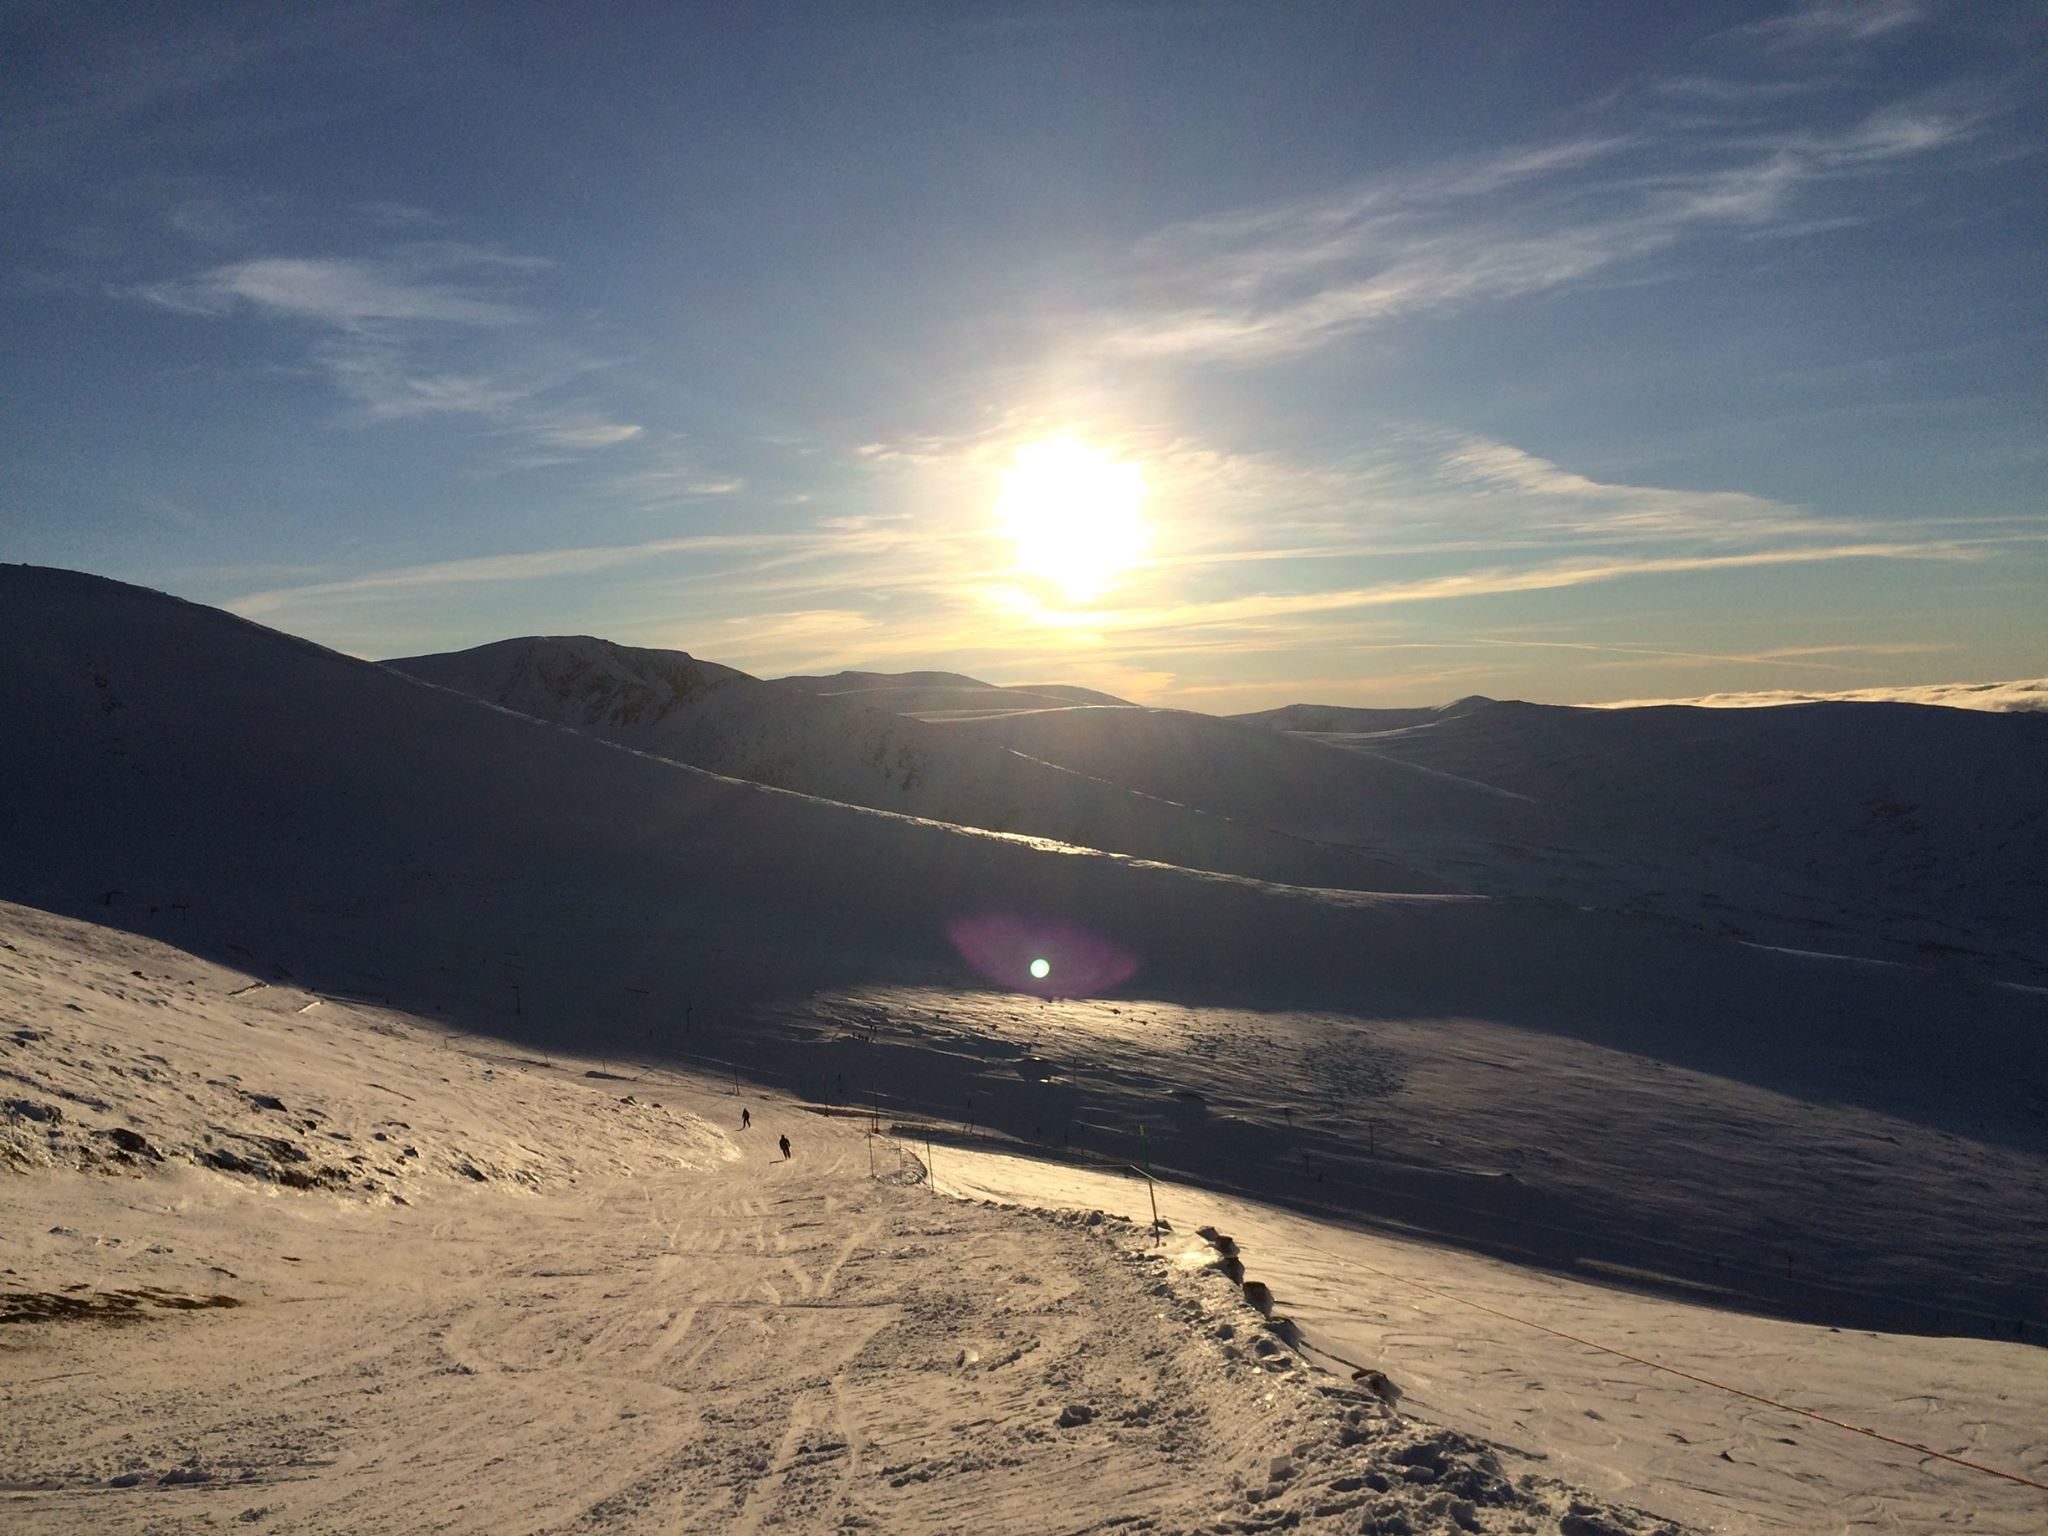 Scottish munro, Cairngorm - home to one of Scotland's largest ski resorts -  experiences a beautiful sunset